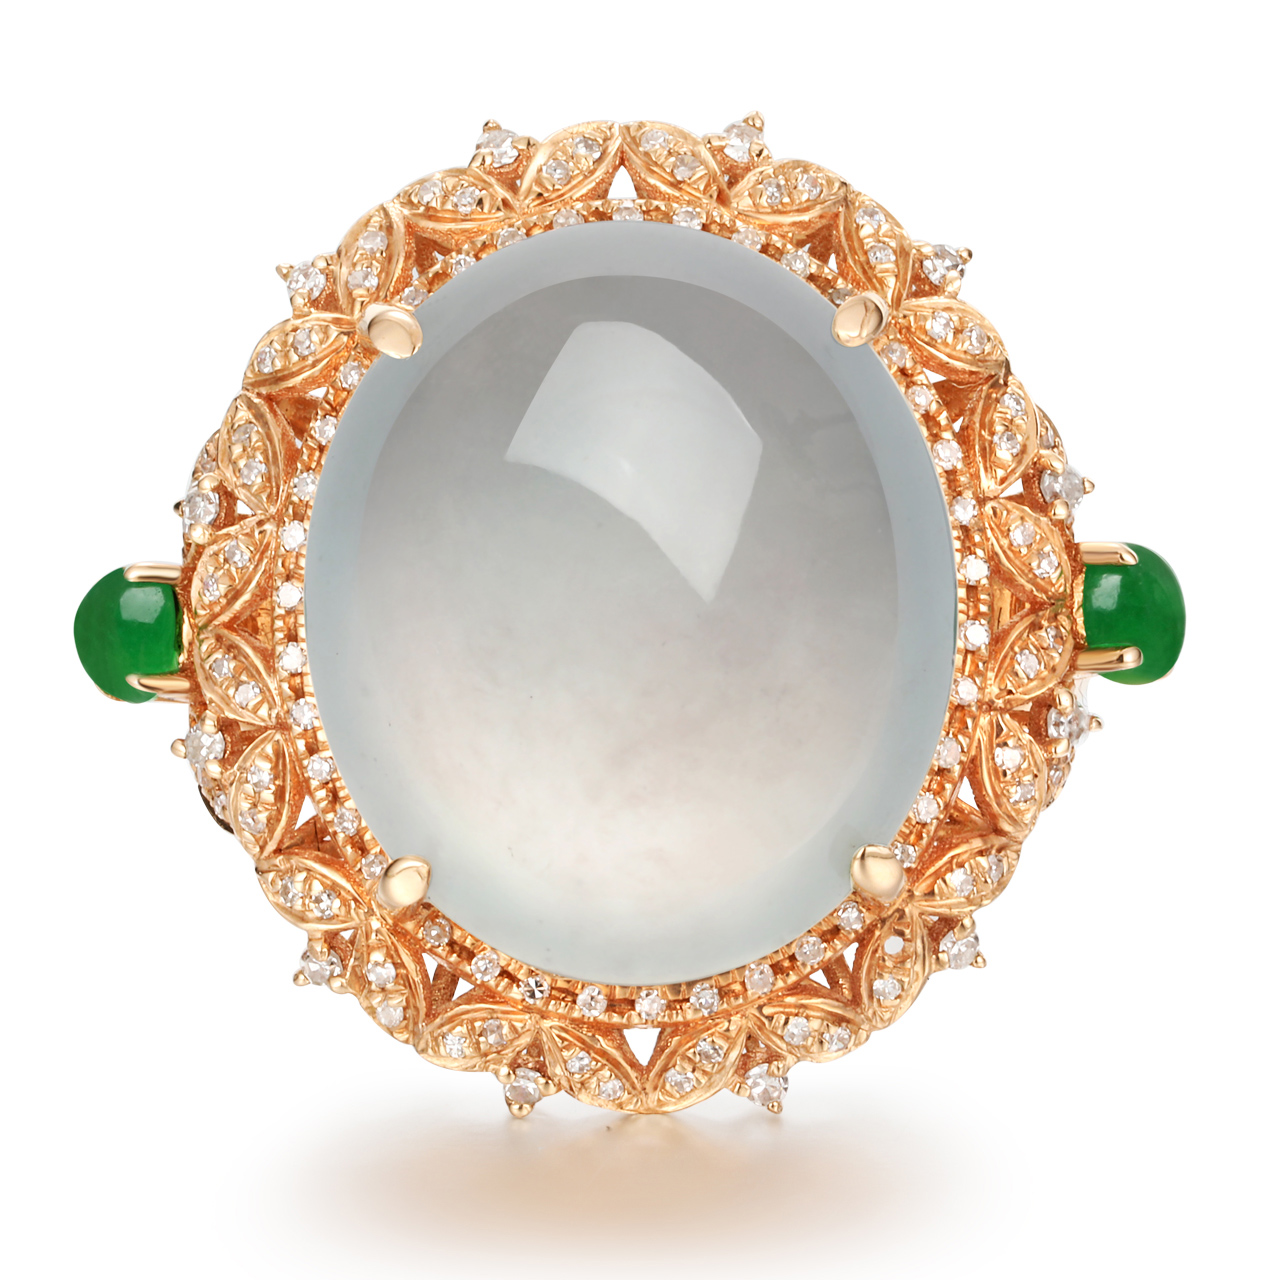 Upstairs a goods jade ice white egg face green egg 18K Gold Diamond Ring w 1285 13.5#